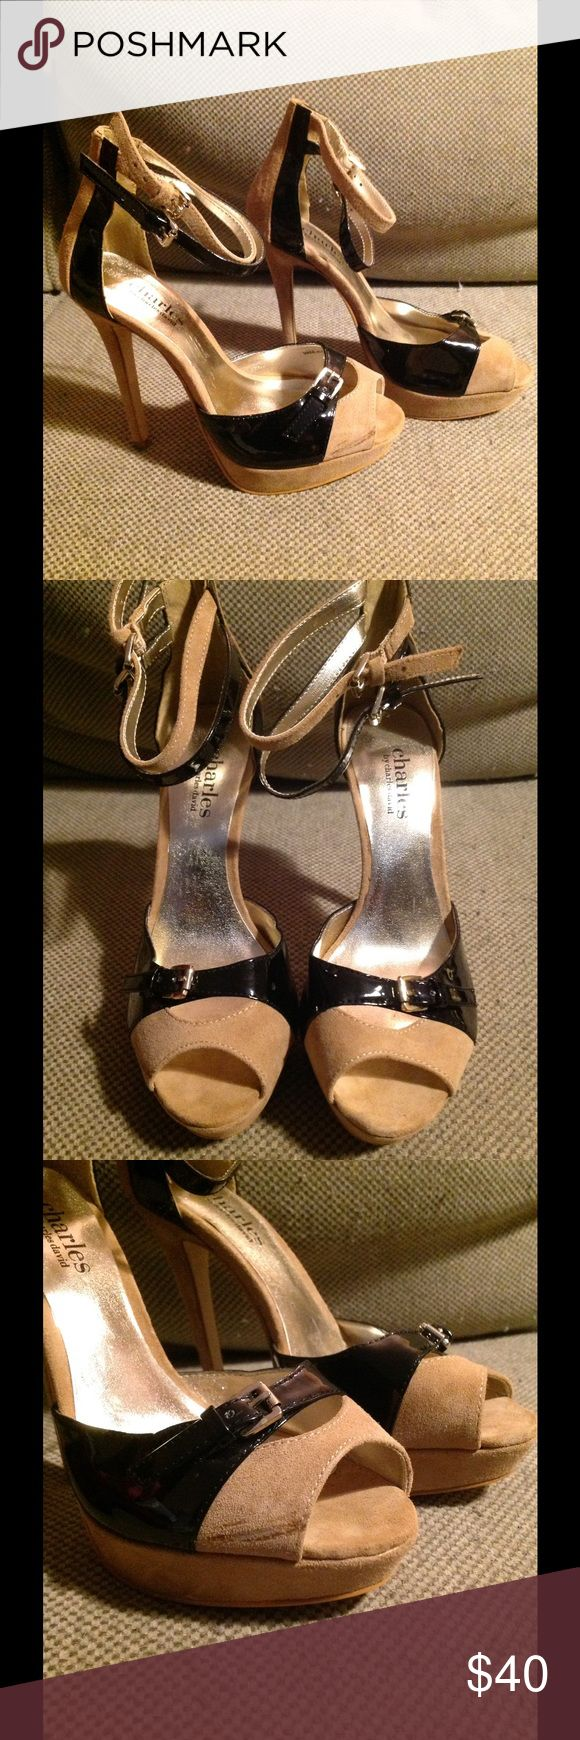 Charles by Charles David heels size 6 Charles by Charles David heels size 6. Preowned. Charles David Shoes